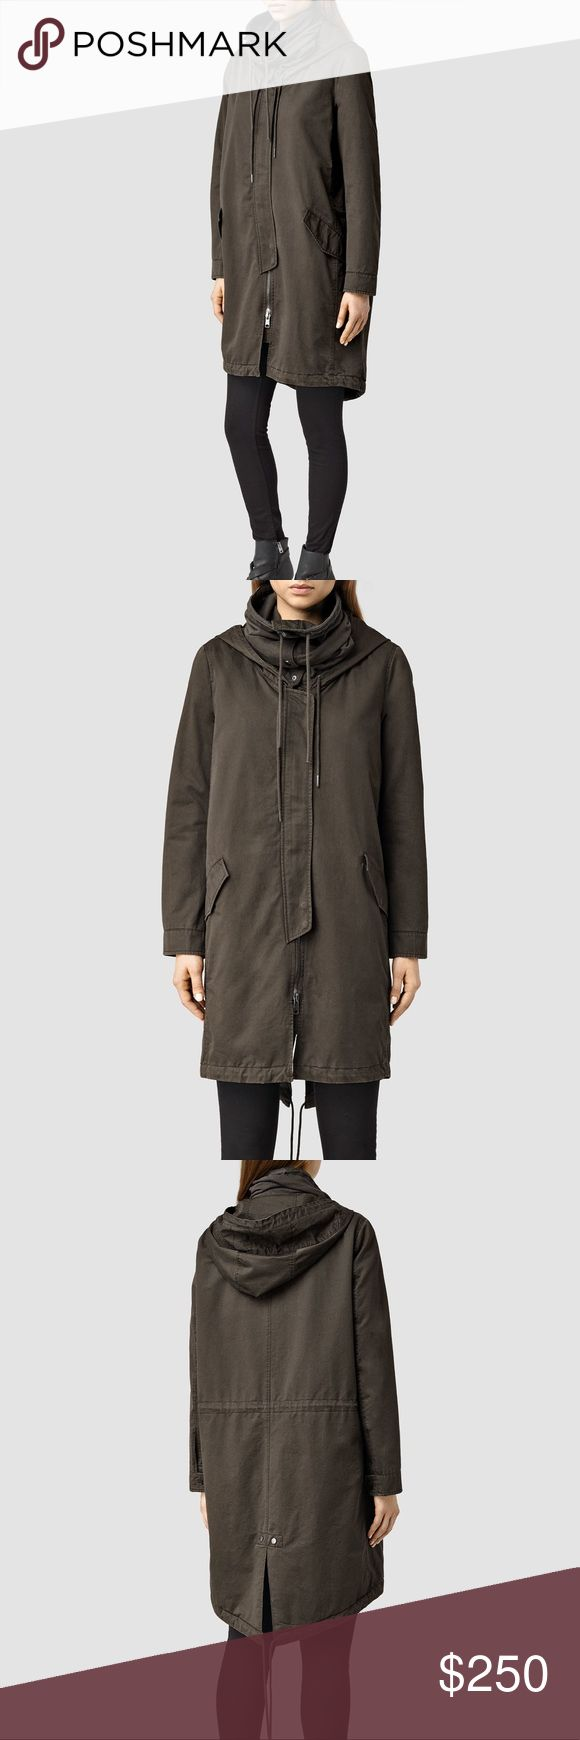 Allsaints Arton Parka size 10US/14UK NWT perfect condition parka by Allsaints. Retails for $468, re-poshing because it's not quite the right fit on me! Beautiful coat, more of a dark khaki color than green. Make me an offer! :) All Saints Jackets & Coats Utility Jackets